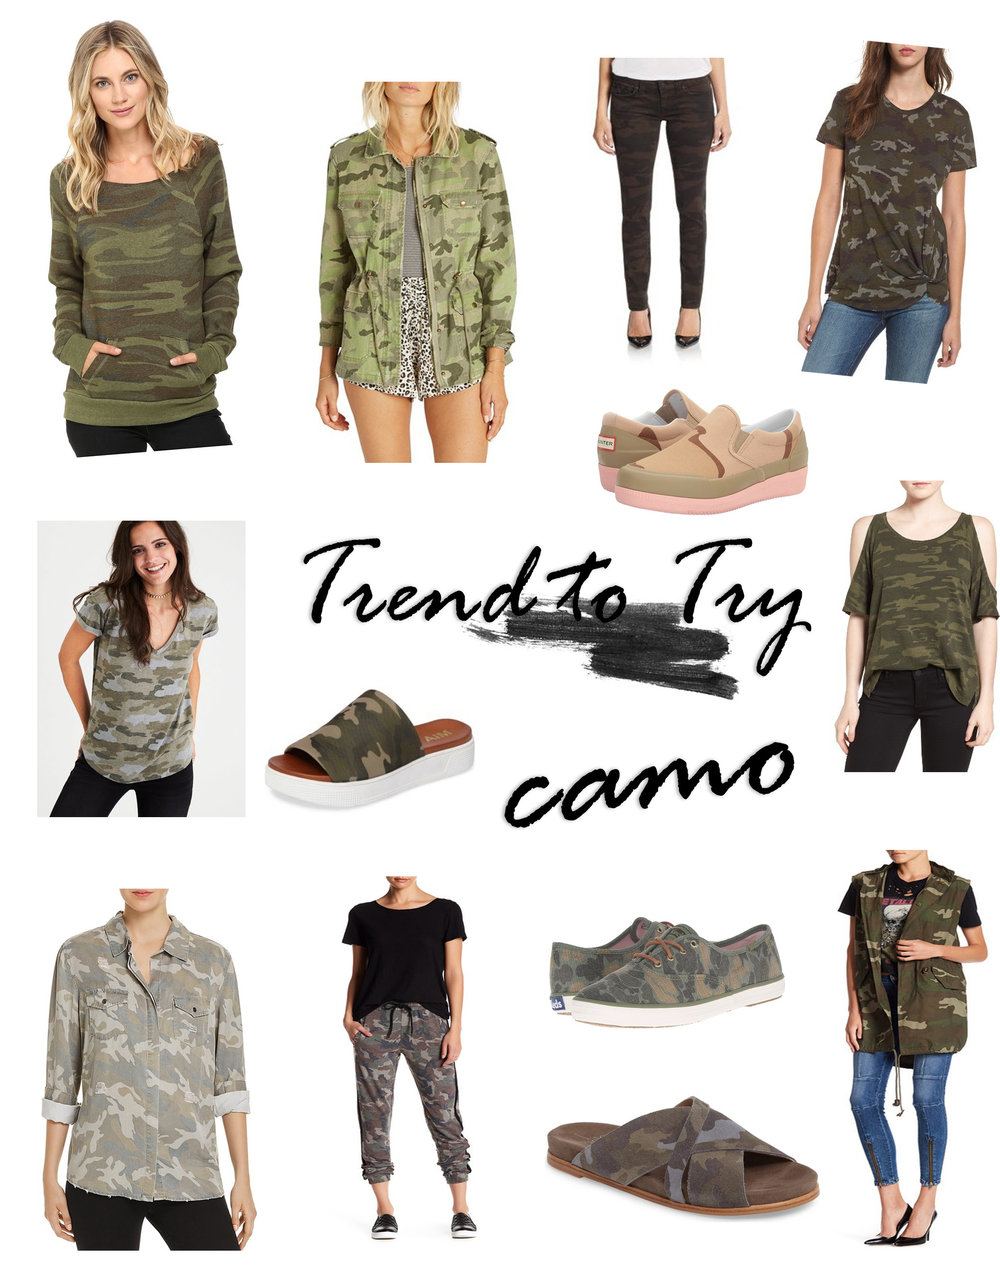 Trends to Try- Camo